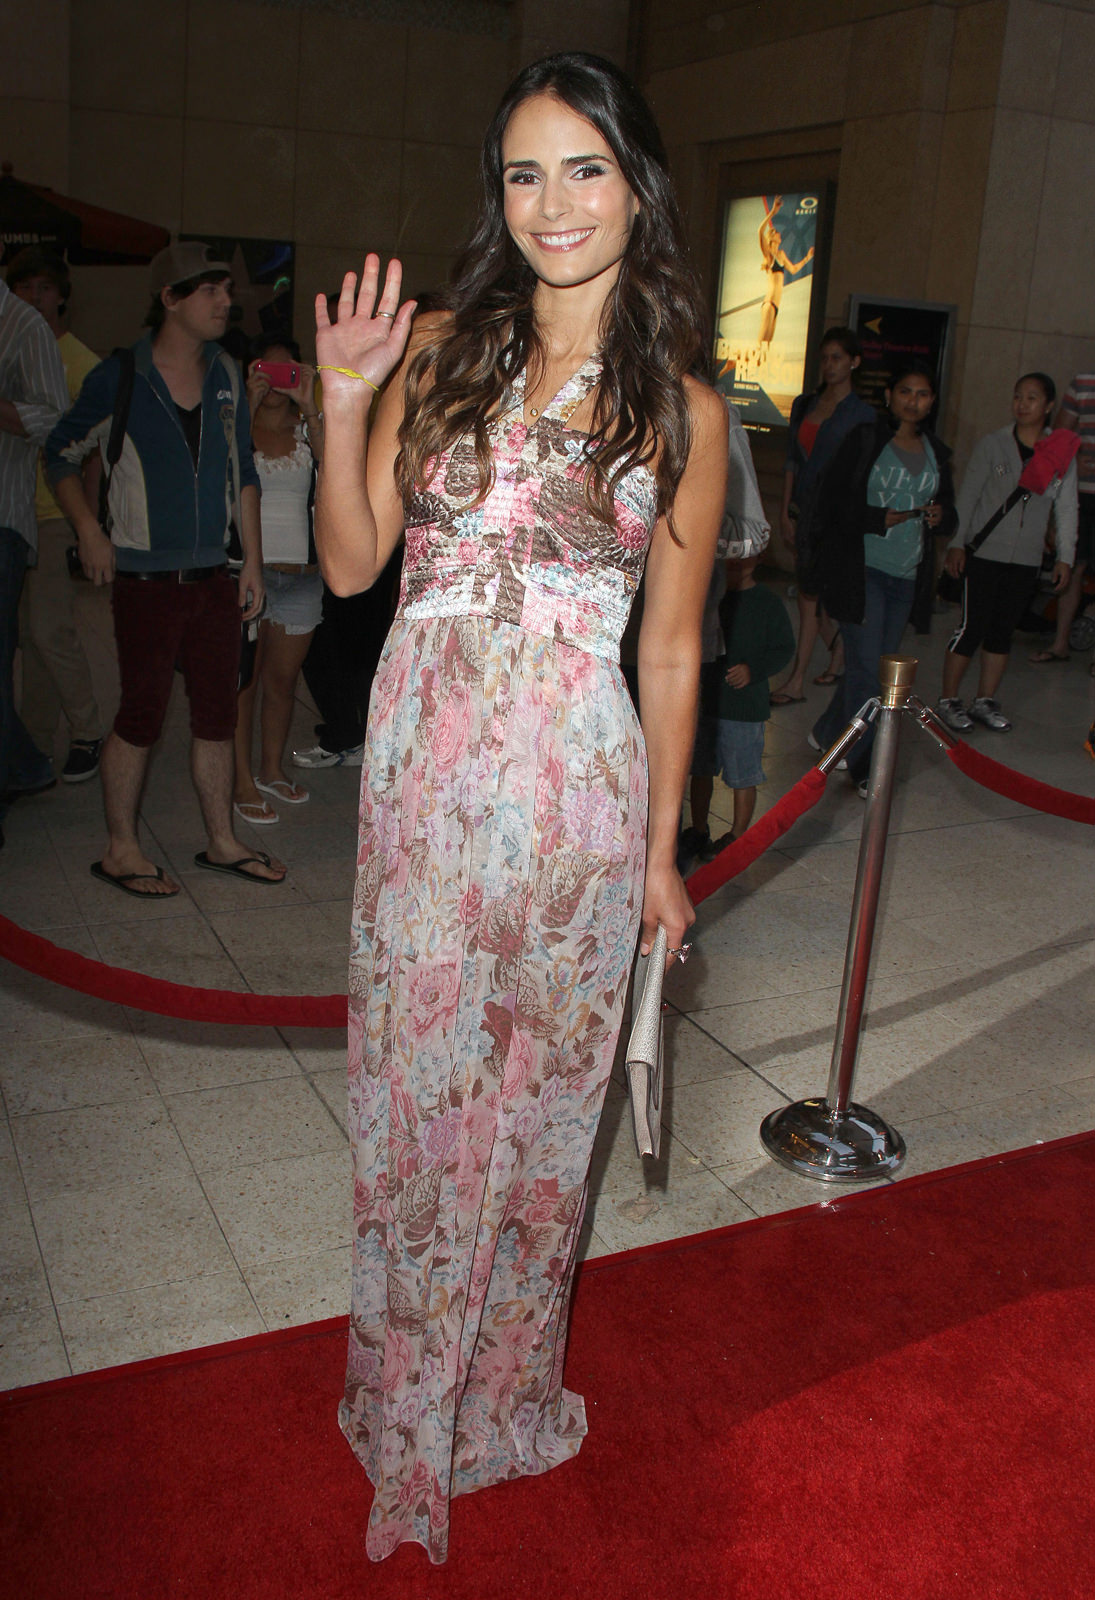 Jordana Brewster Photo Gallery